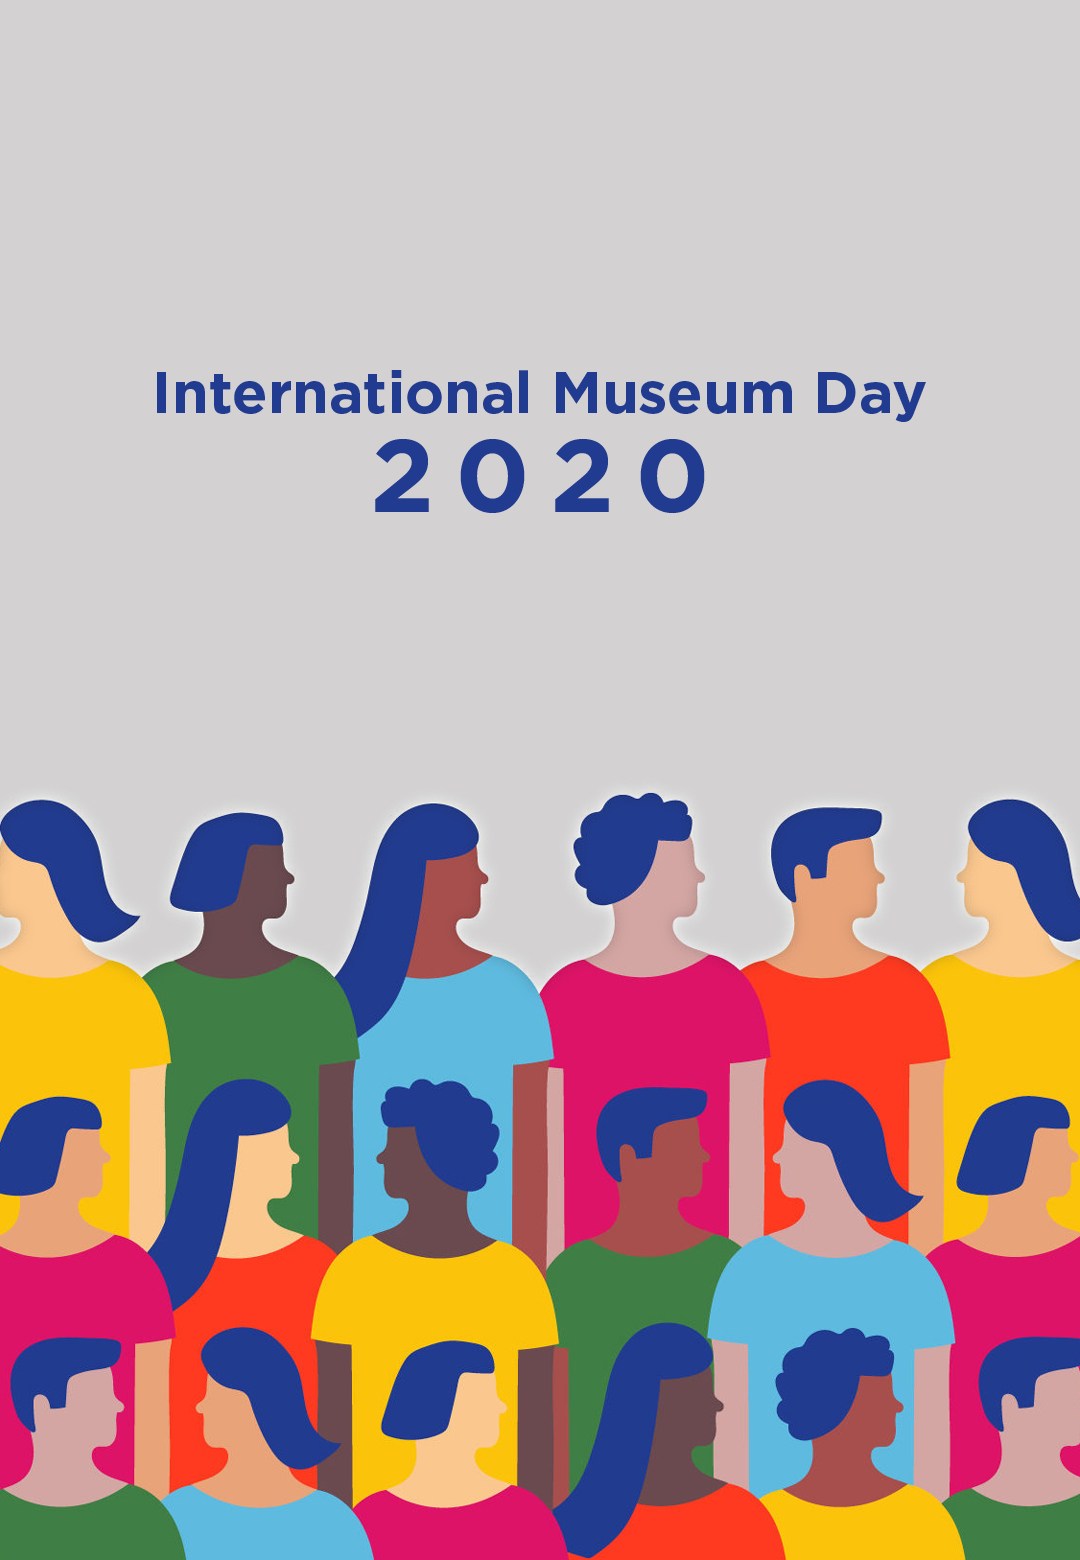 International Museum Day 2020 (May 18) theme 'Museums for Equality: Diversity and Inclusion' | International Council of Museums | STIRworld